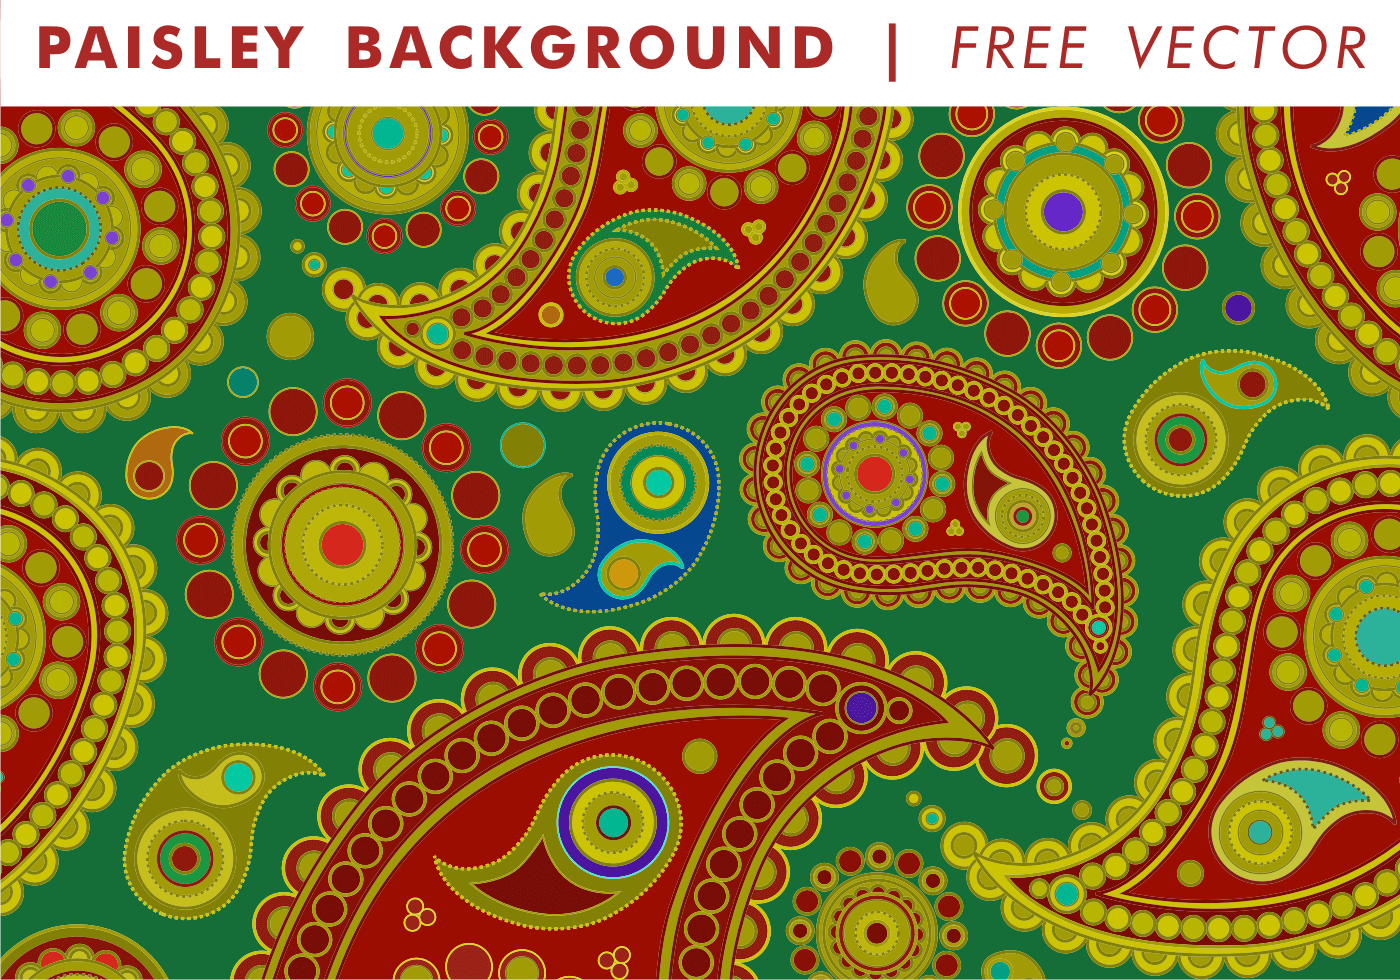 Paisley Background Vol 1 Free Vector Download Free